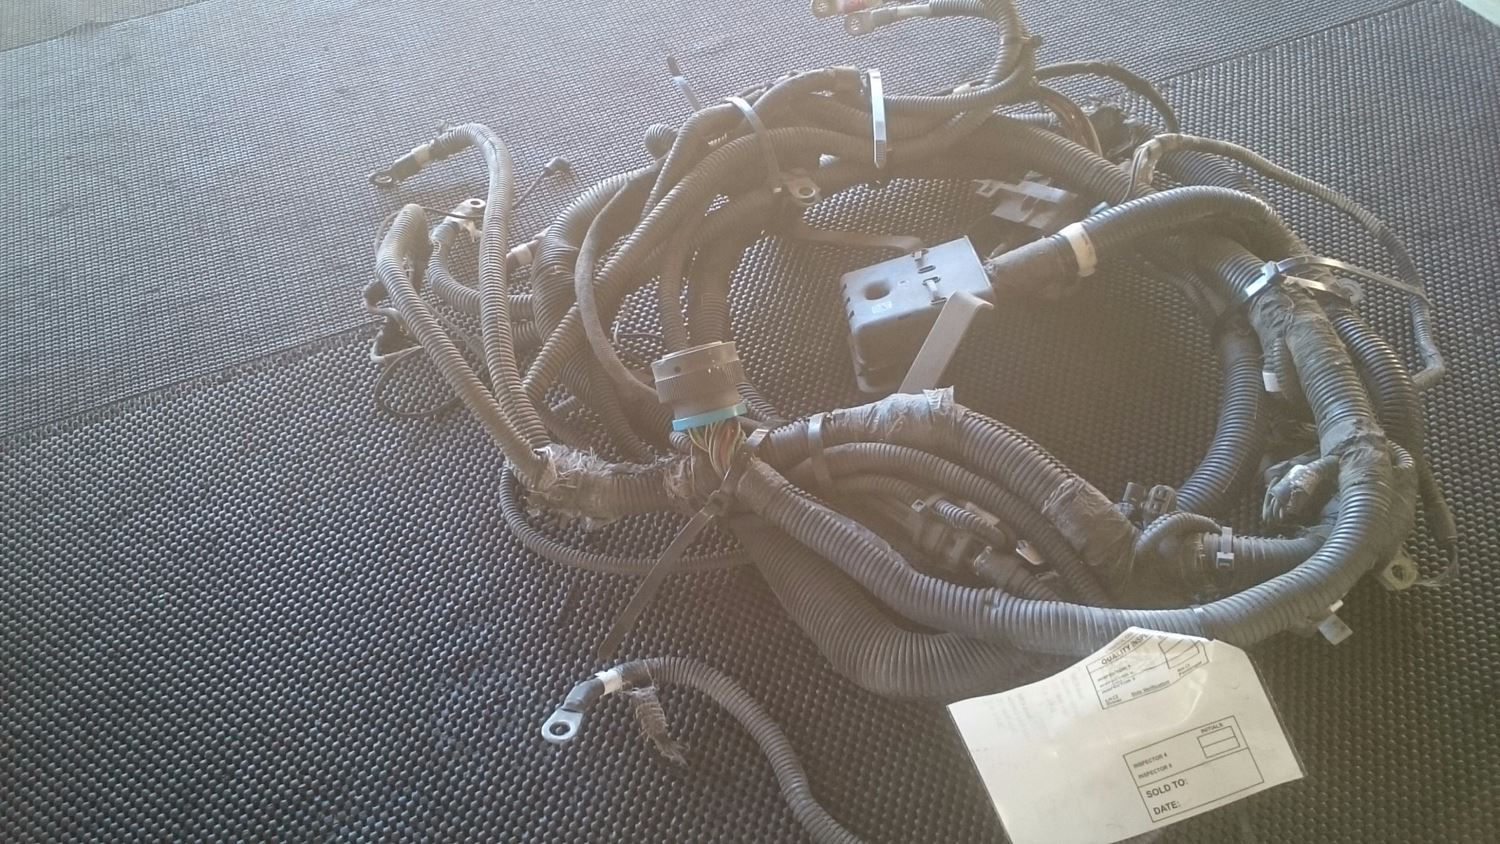 2001 Caterpillar C12 Wiring Harnesses 4WSxhp6zH4cy_f?h=60&w=100&crop=auto wiring harnesses new and used parts american truck chrome  at n-0.co